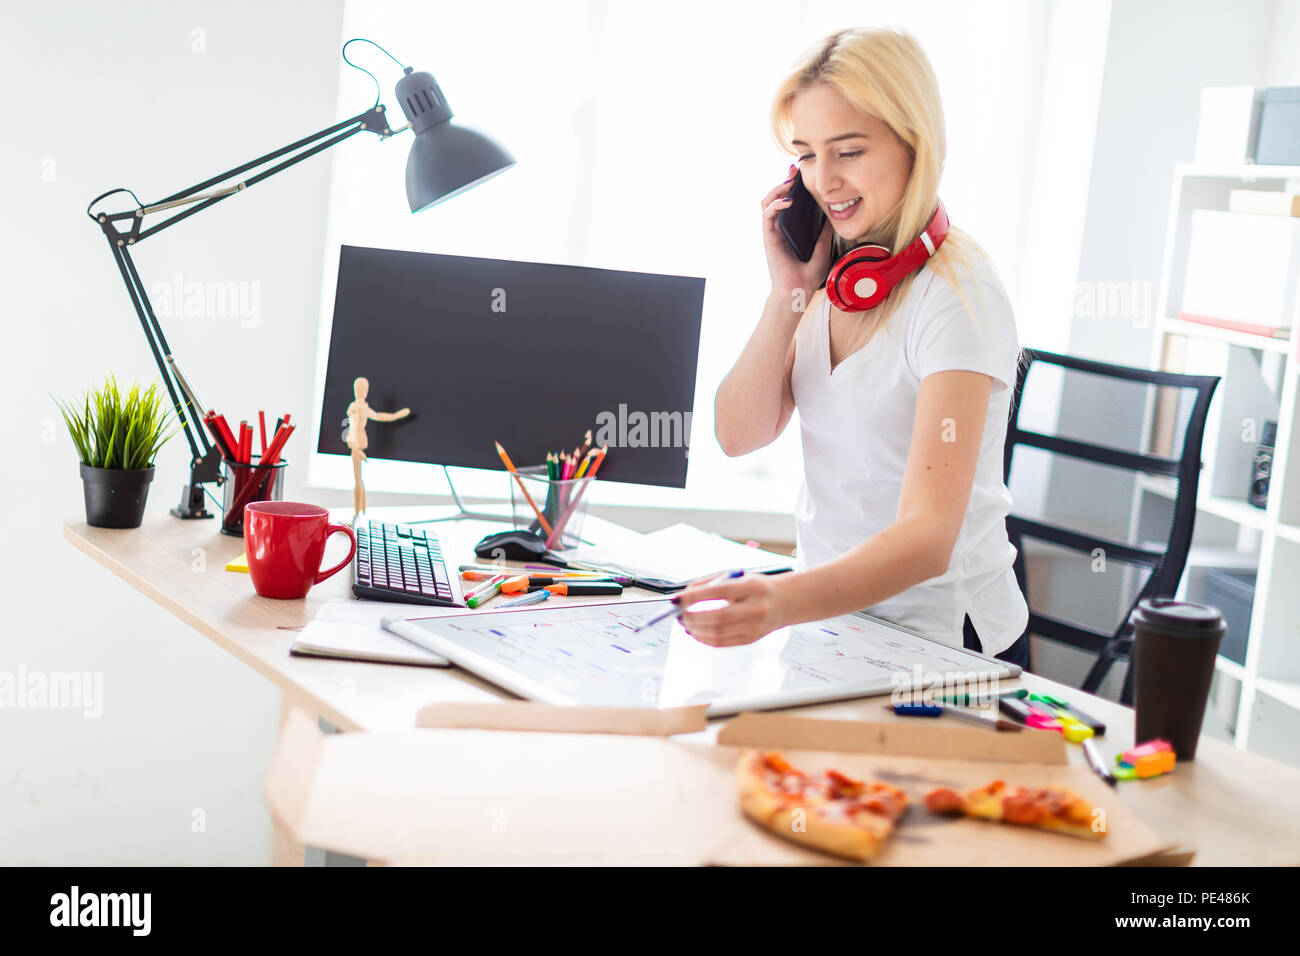 A young girl is standing near a table, talking on the phone and holding a marker in her hand. On the table is a magnetic board. On the neck, the girl's headphones hang. - Stock Image